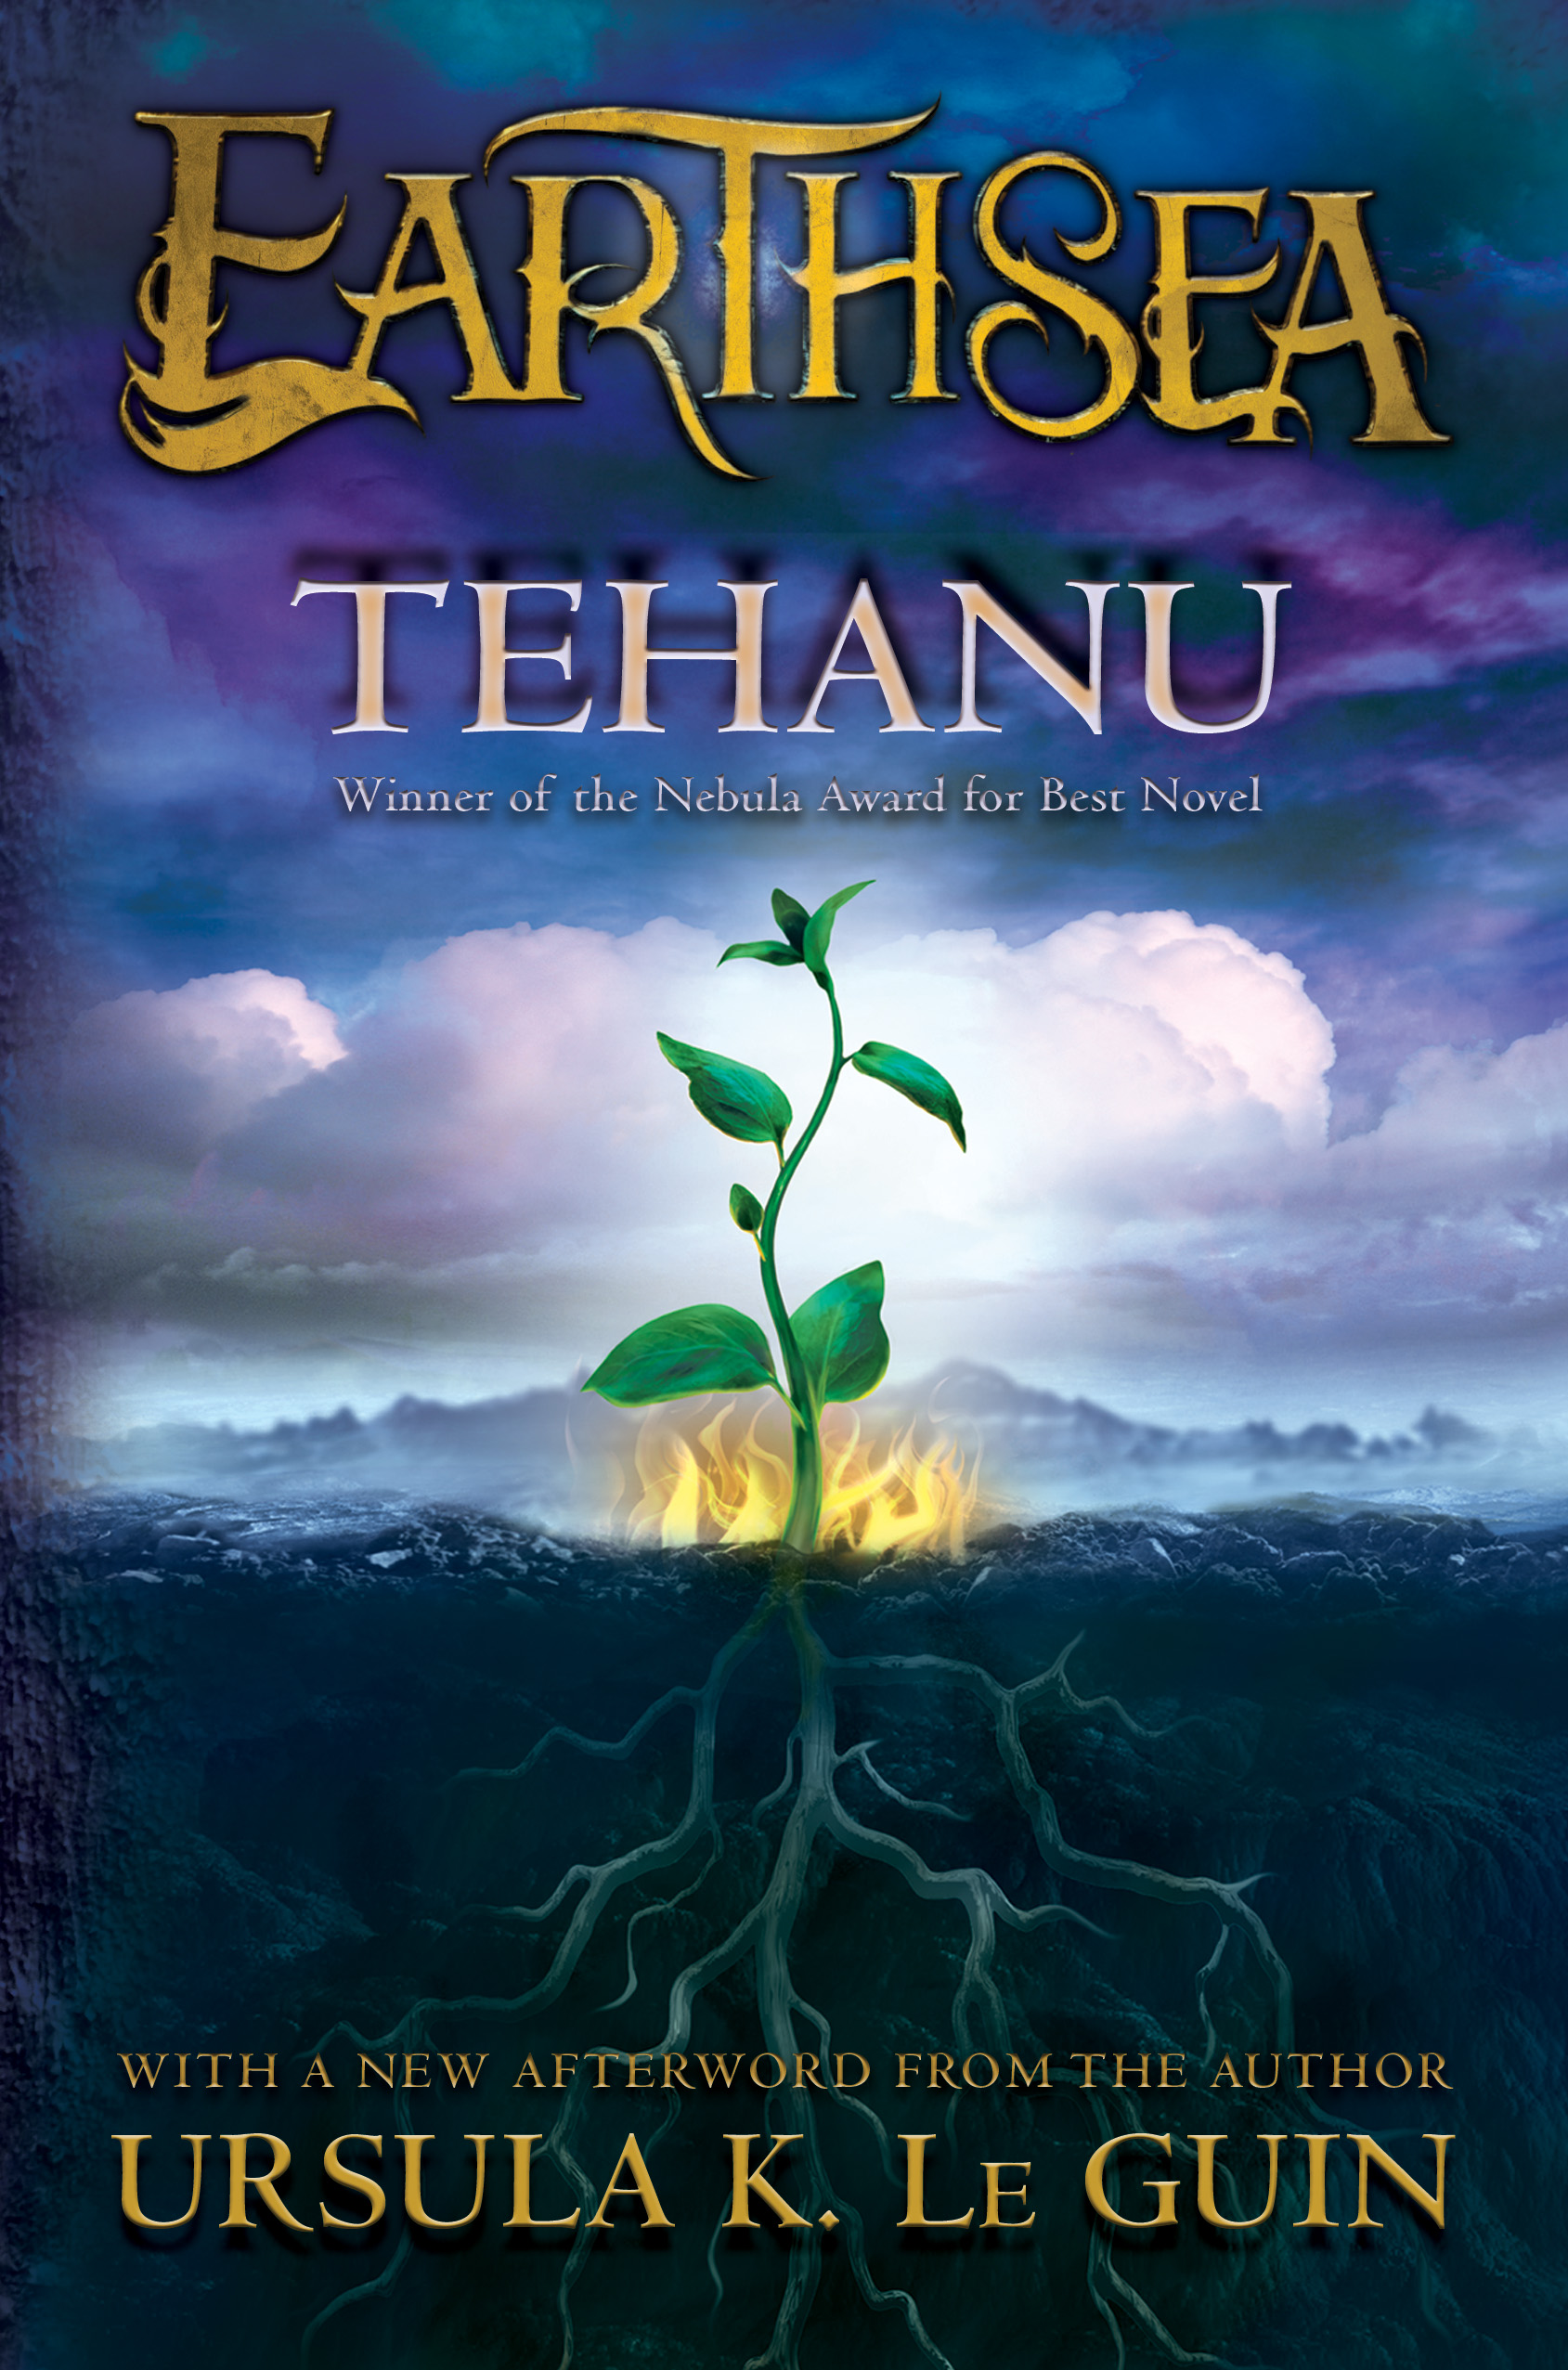 Tehanu | Book by Ursula K. Le Guin | Official Publisher